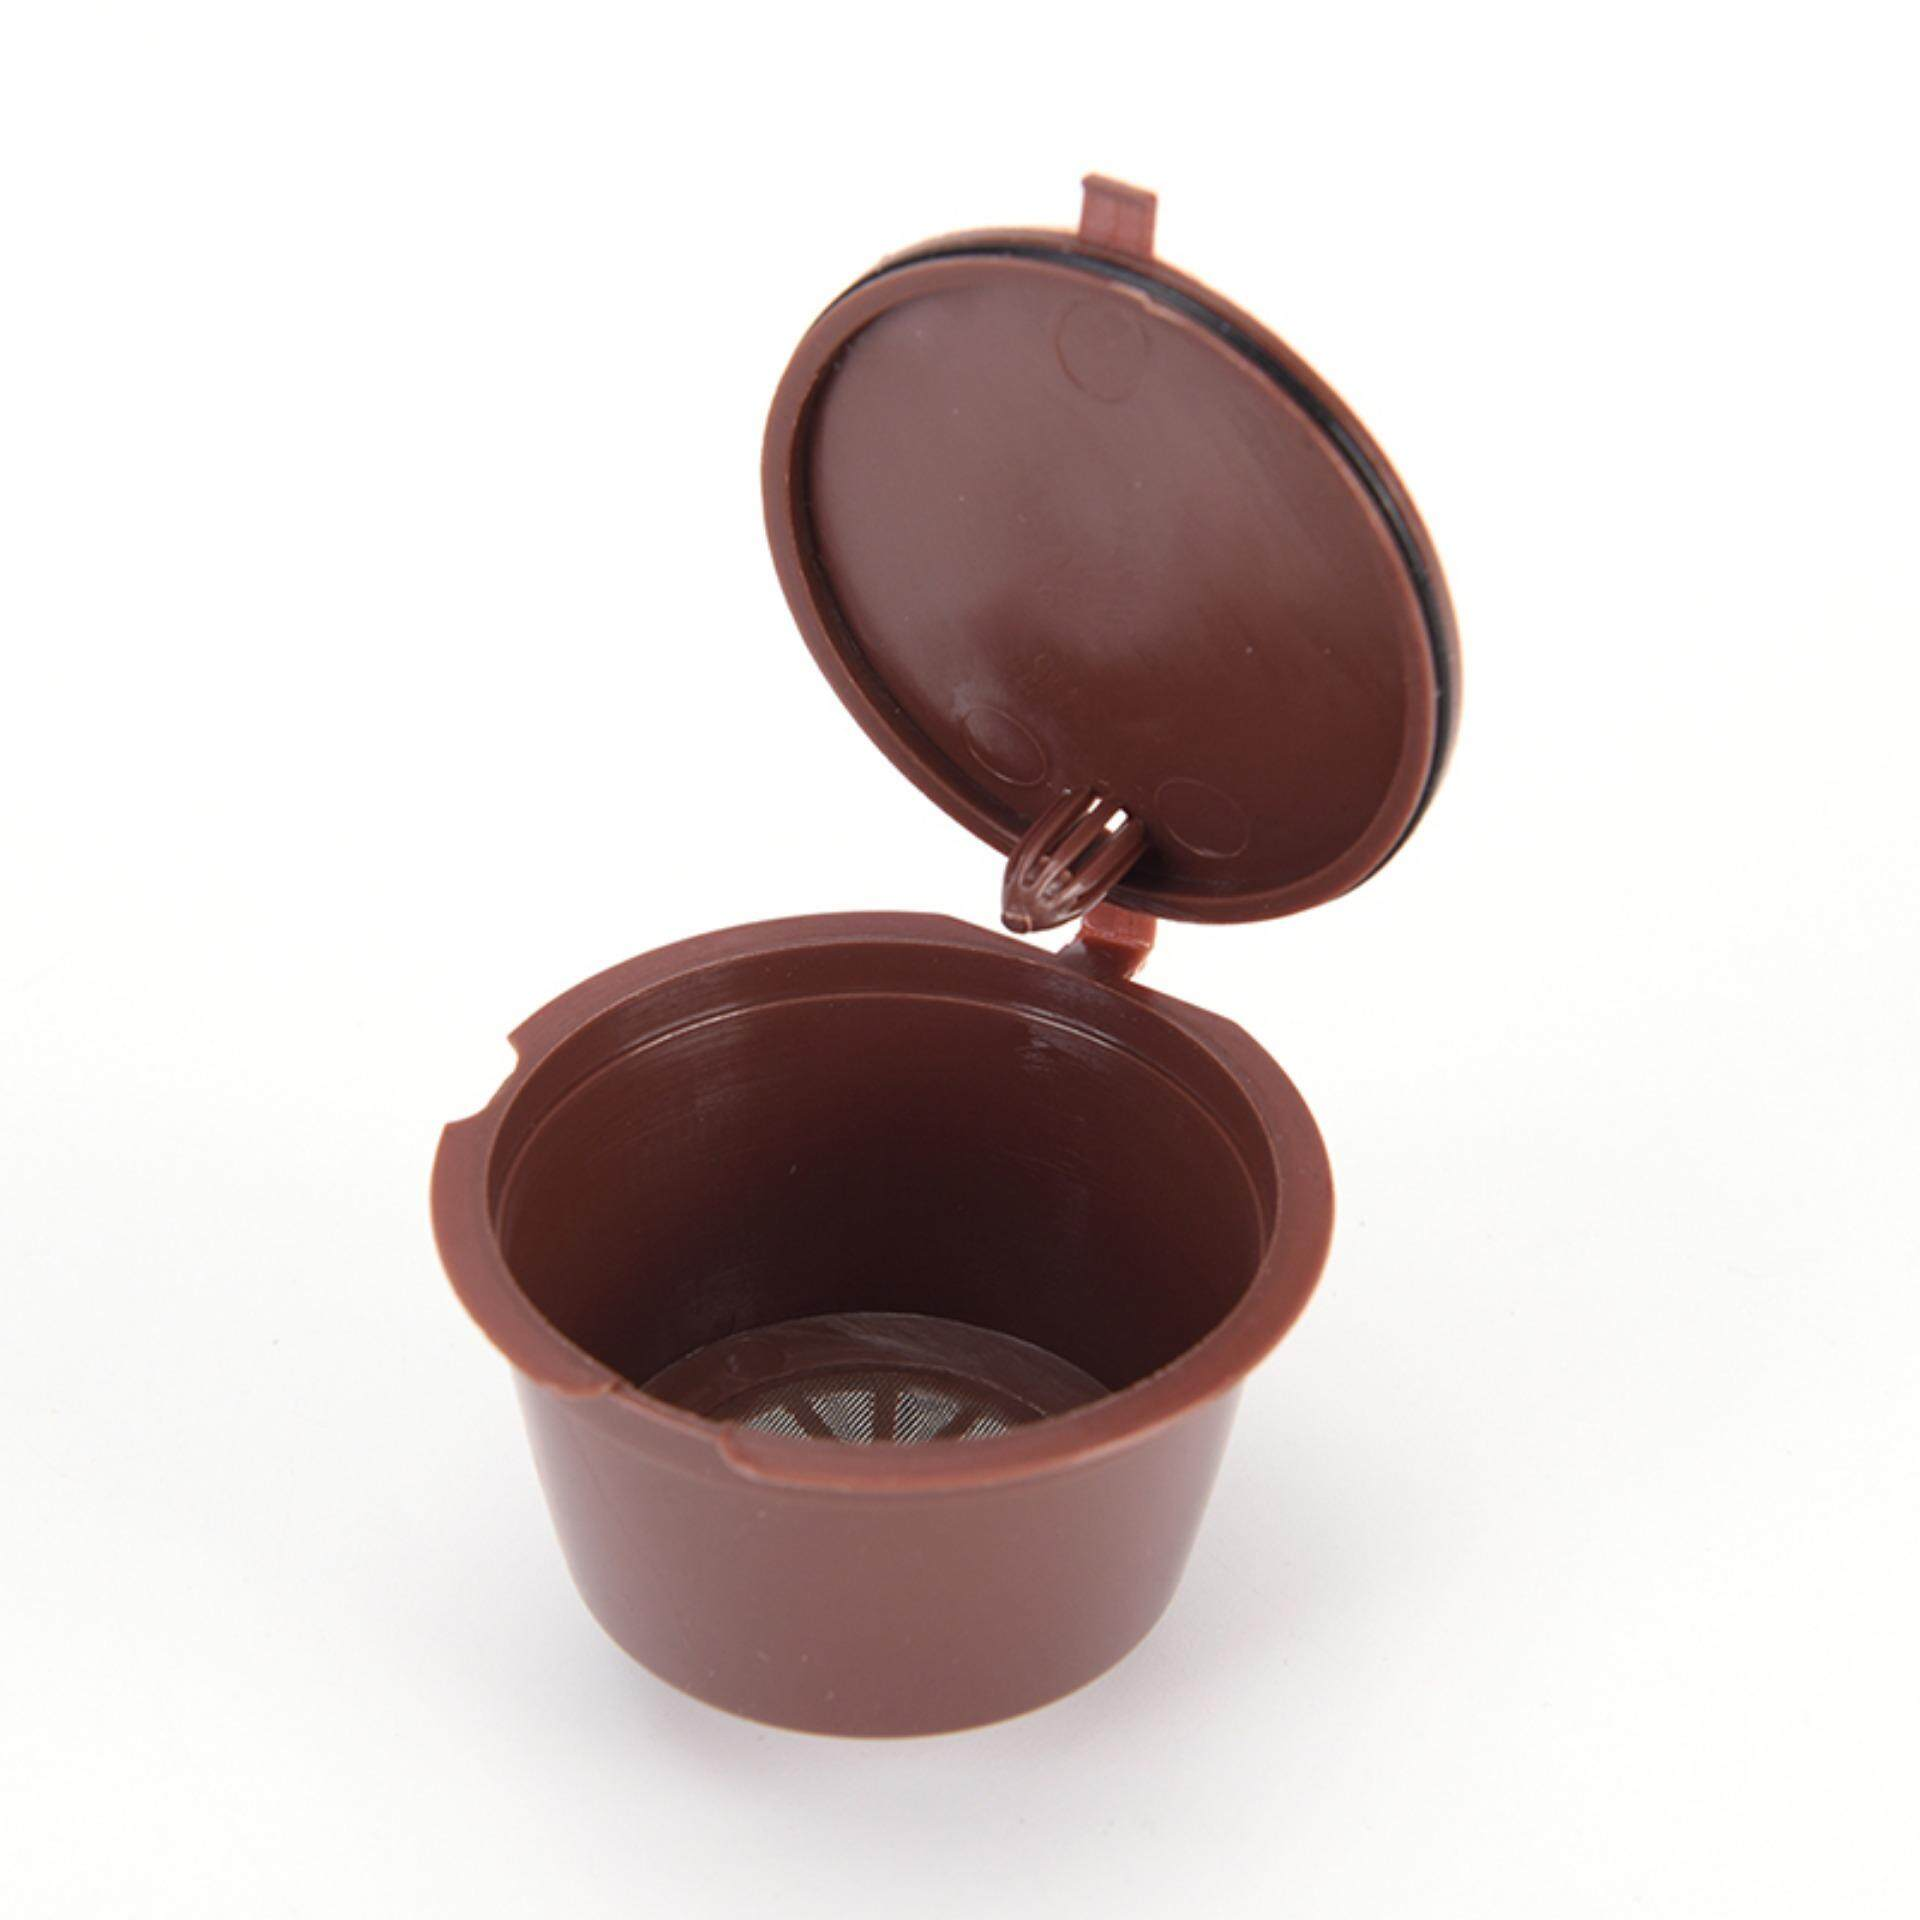 Good Reusable Capsule Pod Coffee Filter Cup Holder for Nescafe Gusto Machine Brown - intl .